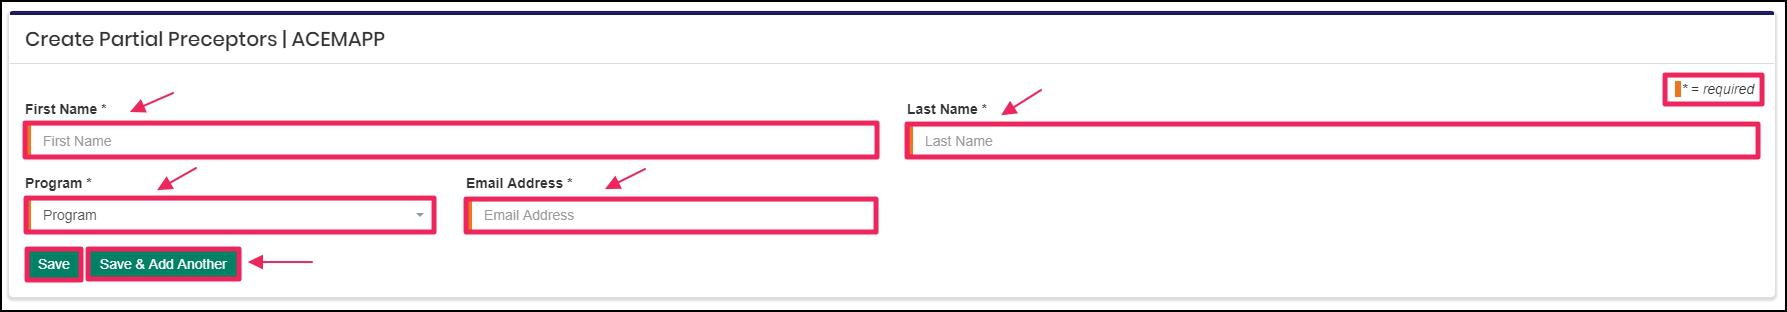 Image pointing to required field legend, first name, last name, email address, program required fields, and save and save and add another button on creating partial preceptors page